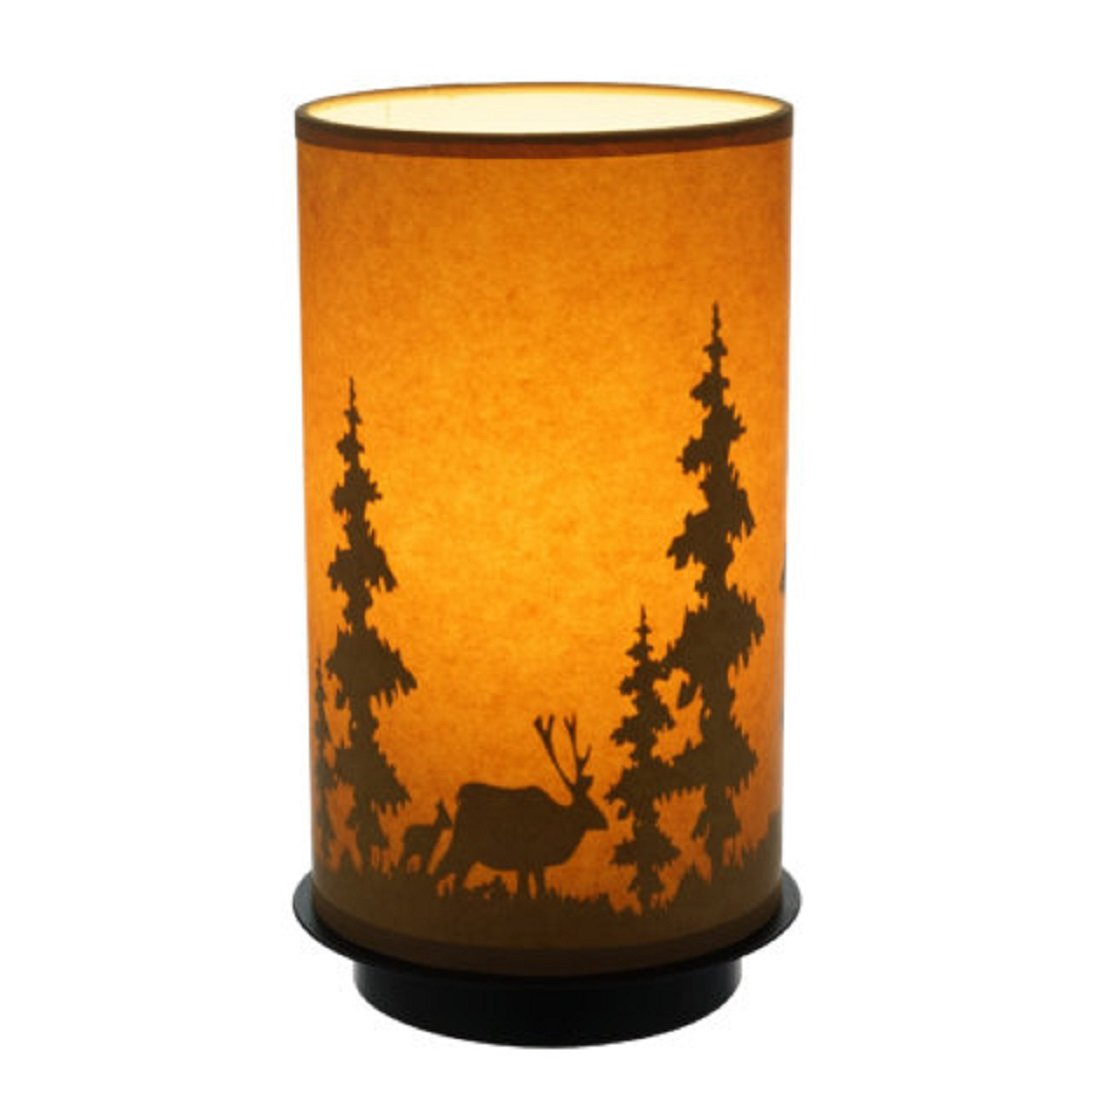 CATALINA Carefully Hand-Crafted Decorative Oil Paper Lamp Uplight - ideal for Modern Homes, Log Cabin - Oil paper shade printed with lodge theme - 6.5 in. L x 6.5 in. W x 11 in. H